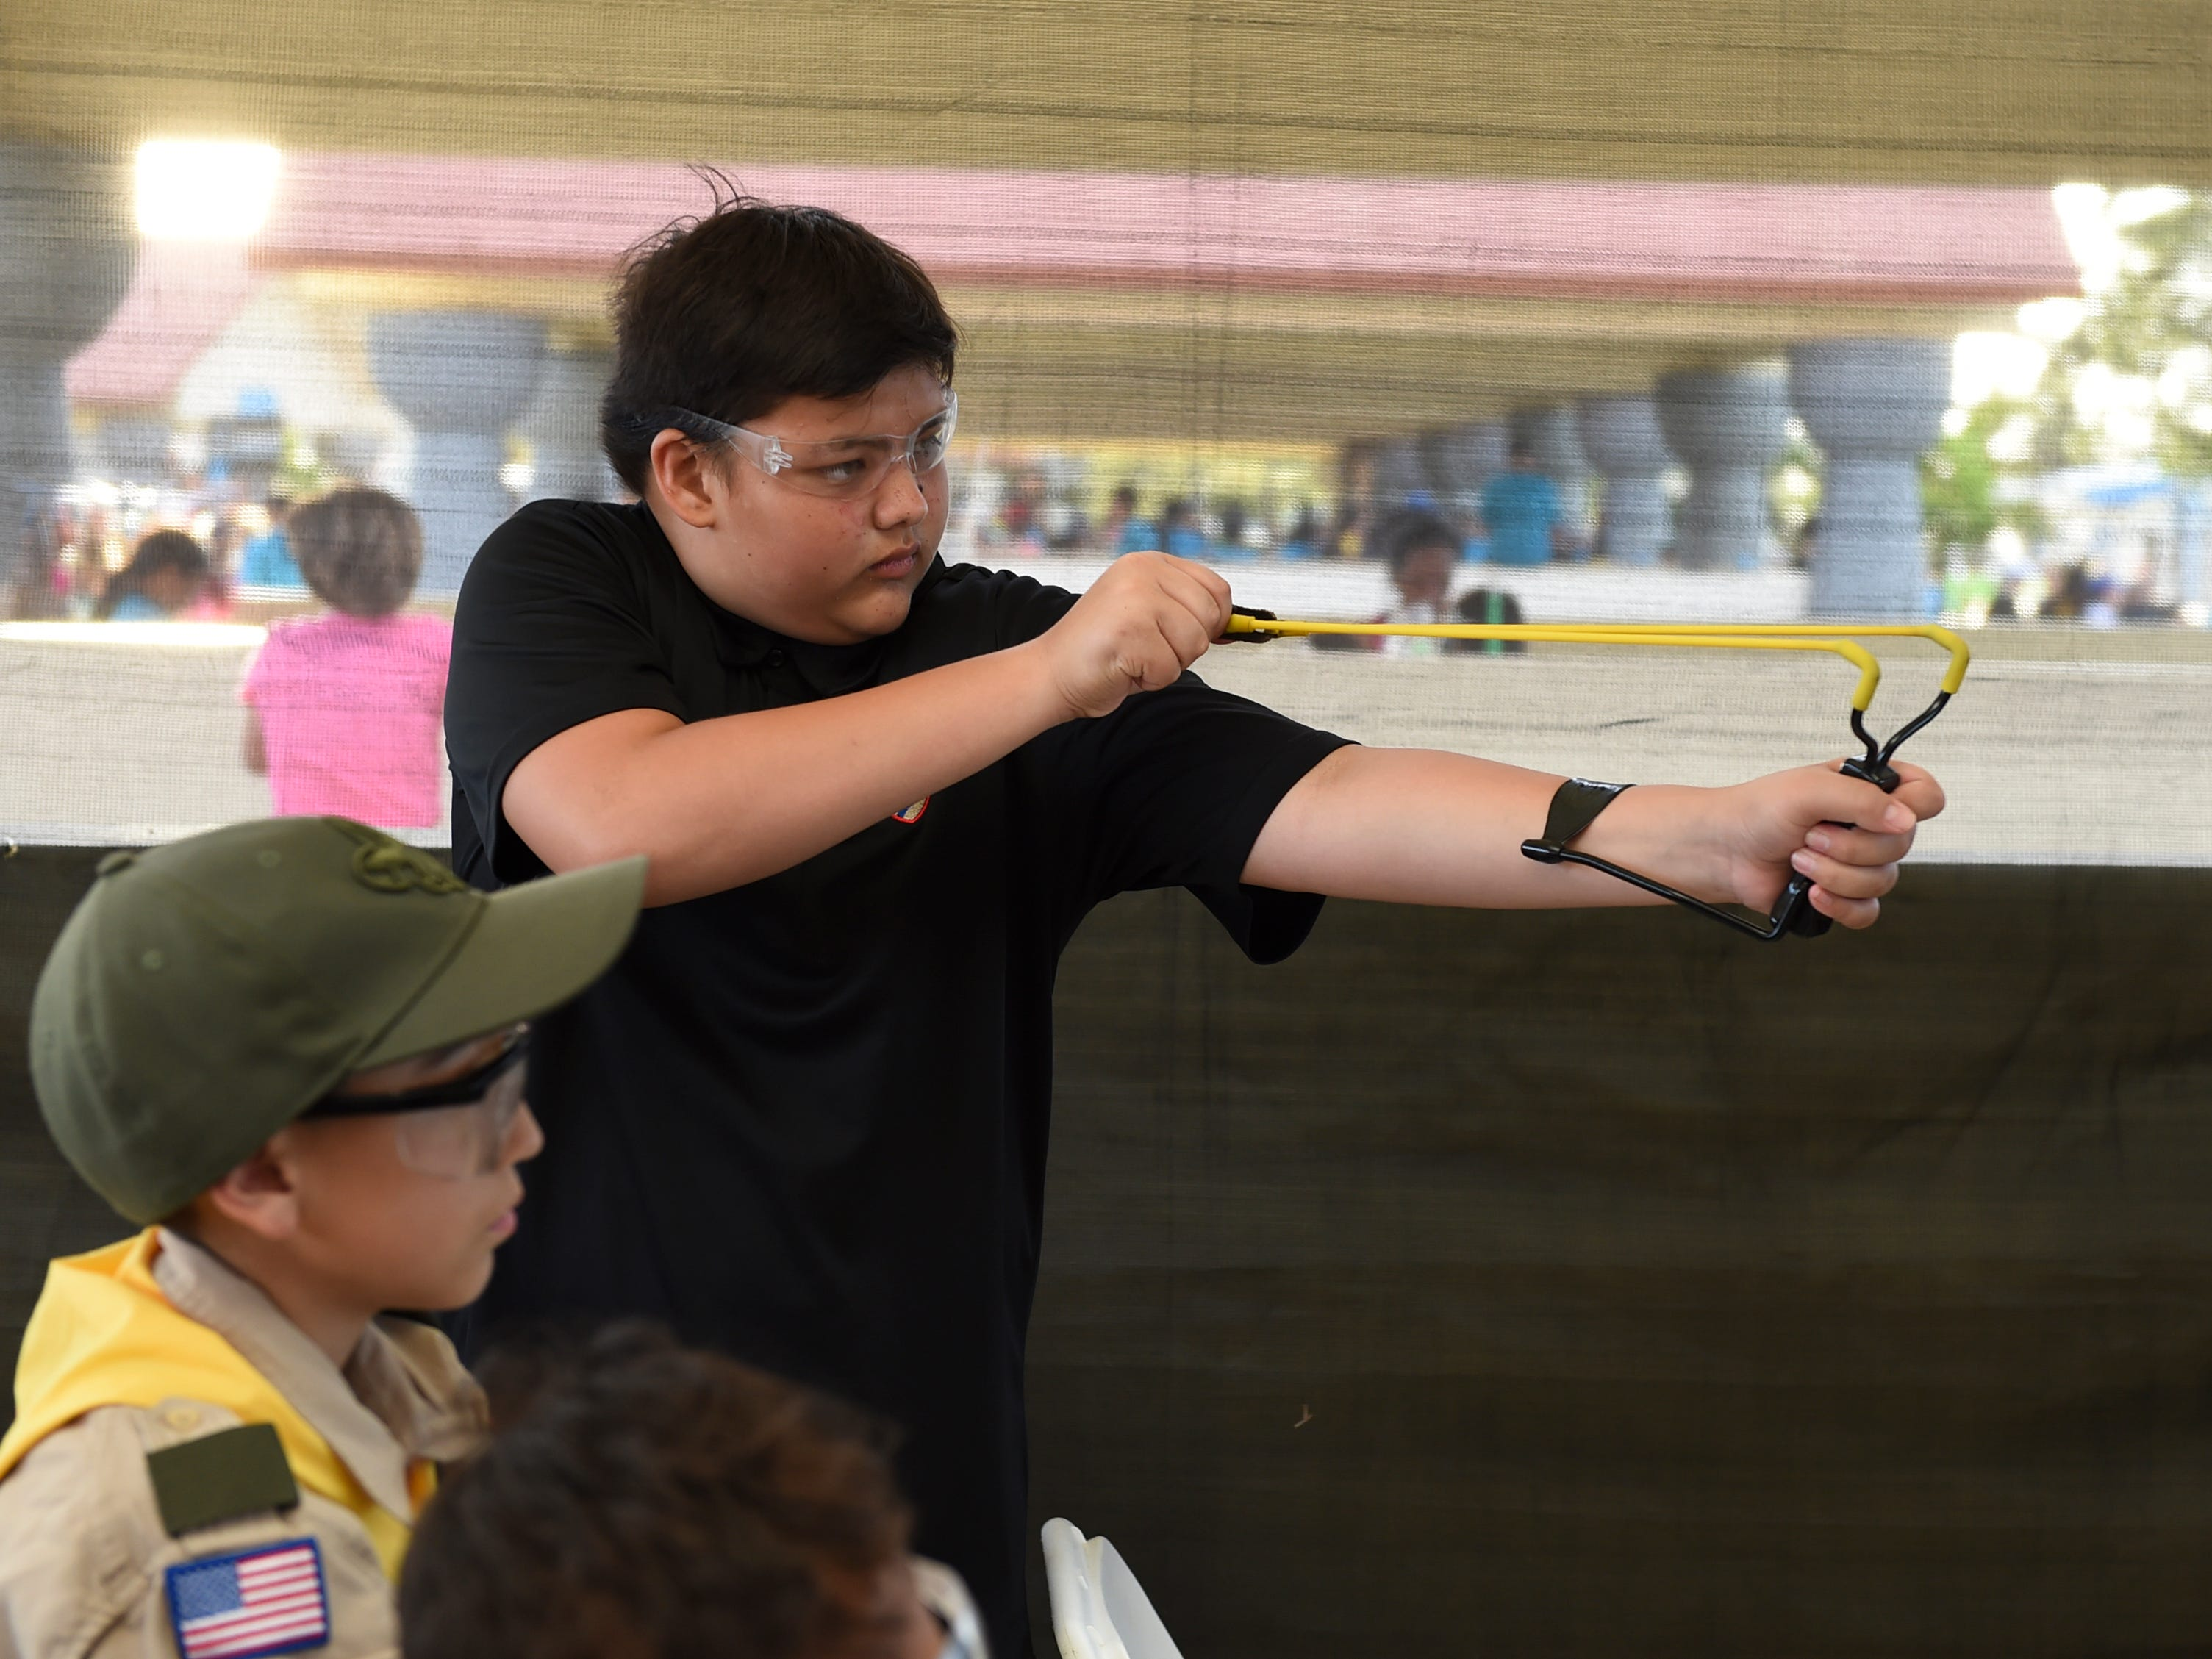 Issac Erickson, 13, shoots targets with a slingshot in the Boy Scouts of America Kid Zone booth during the Bank of Guam Ifit Run and Block Party at Chamorro Village in Hagåtña, March 9, 2019.